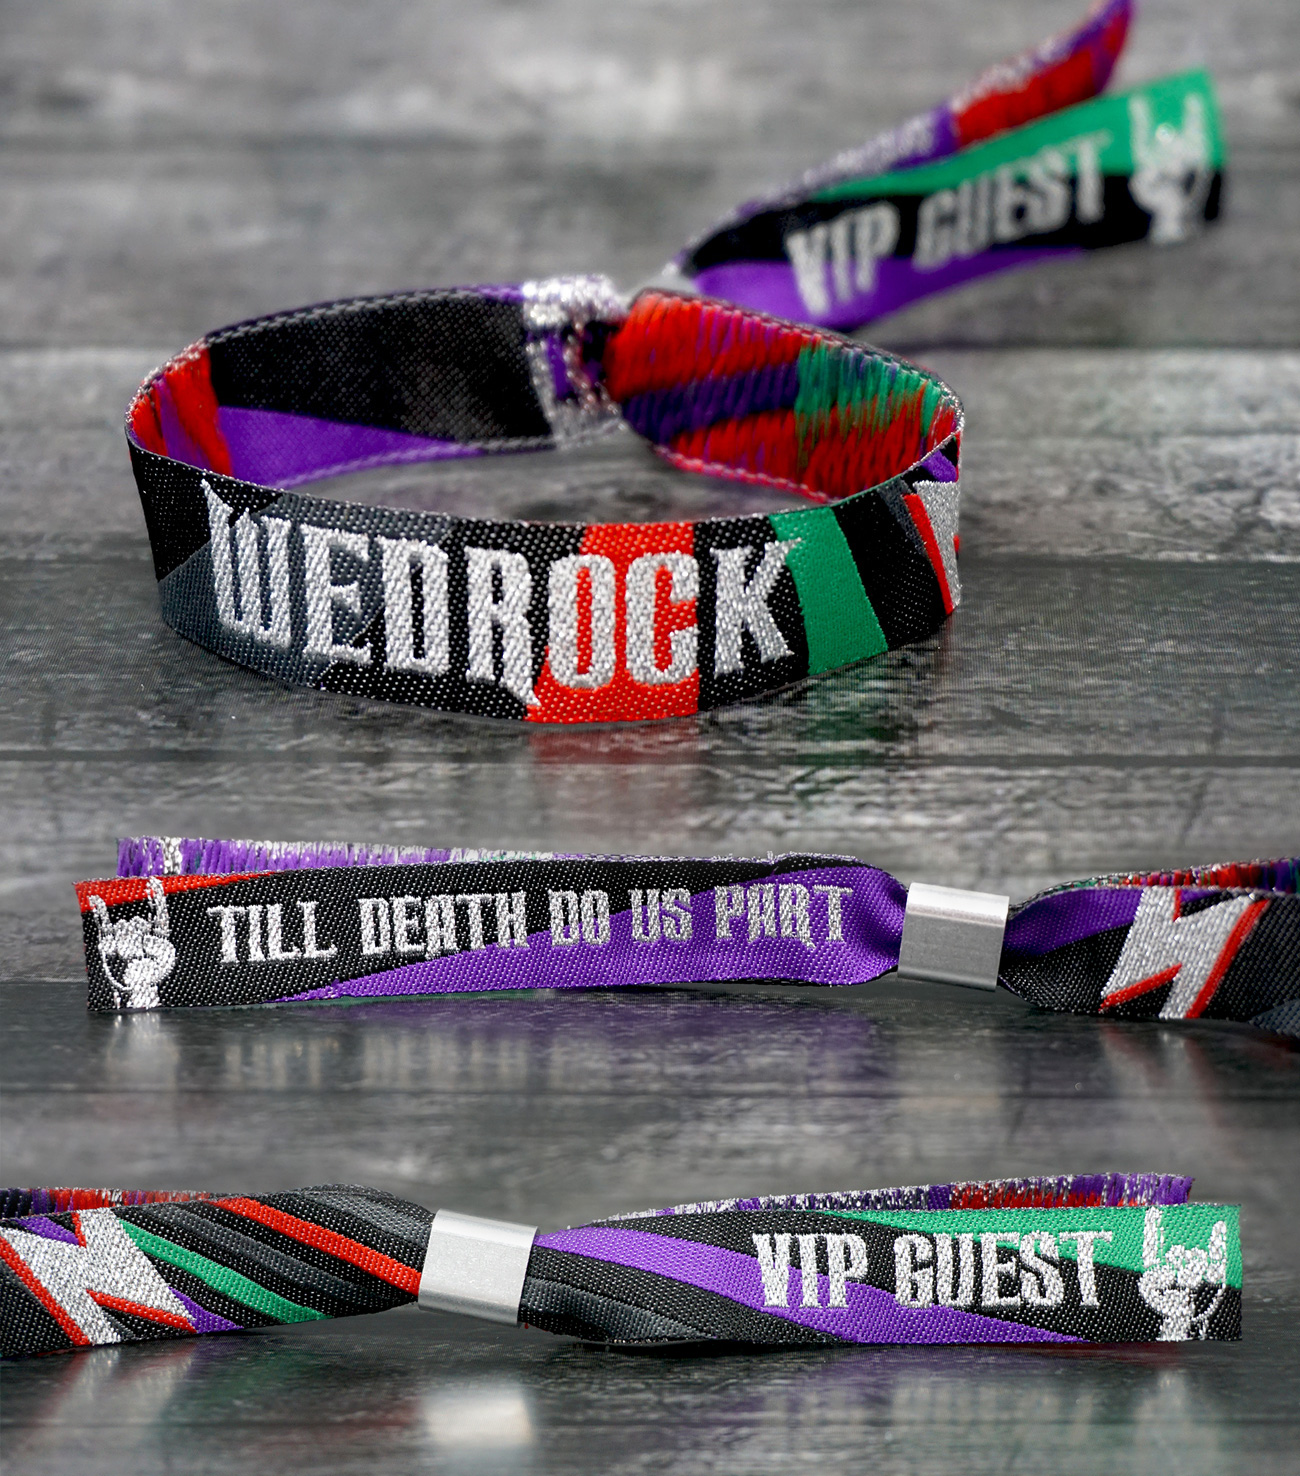 wedrock rockers rock n roll wedding wristbands